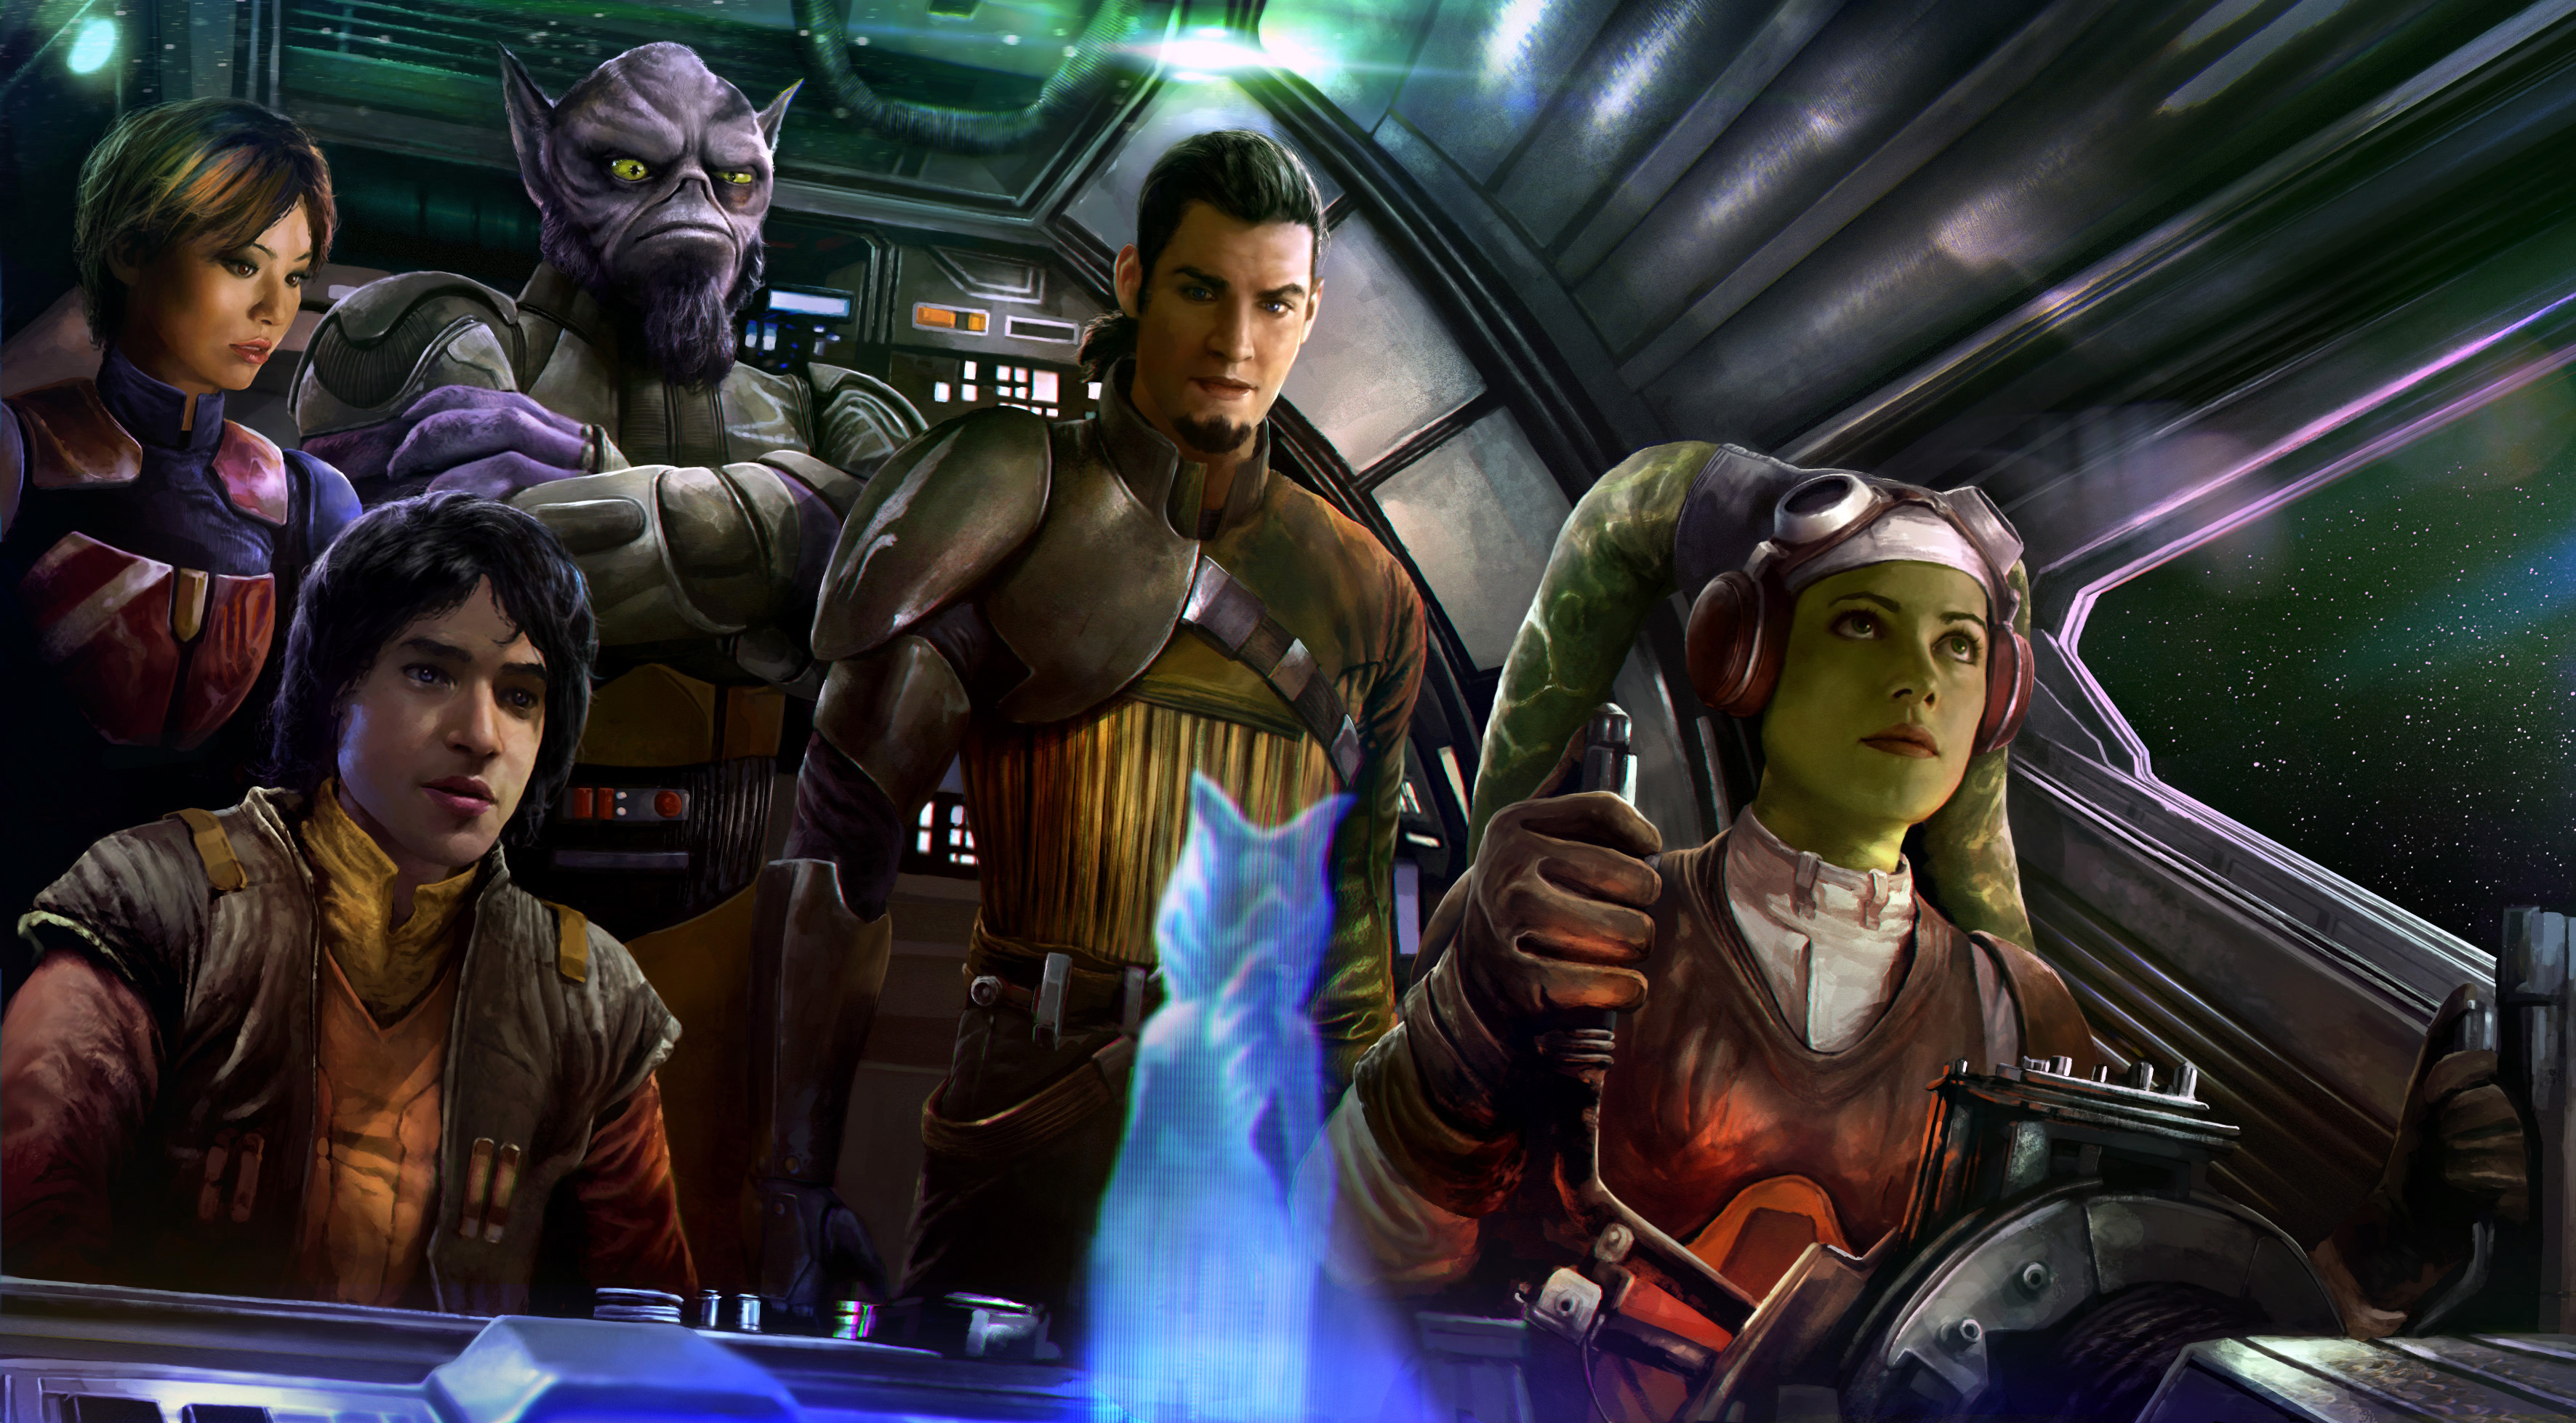 Explore Star Wars Rebels the animated series that tells the story of the Rebellions beginnings while the Empire spreads tyranny through the galaxy